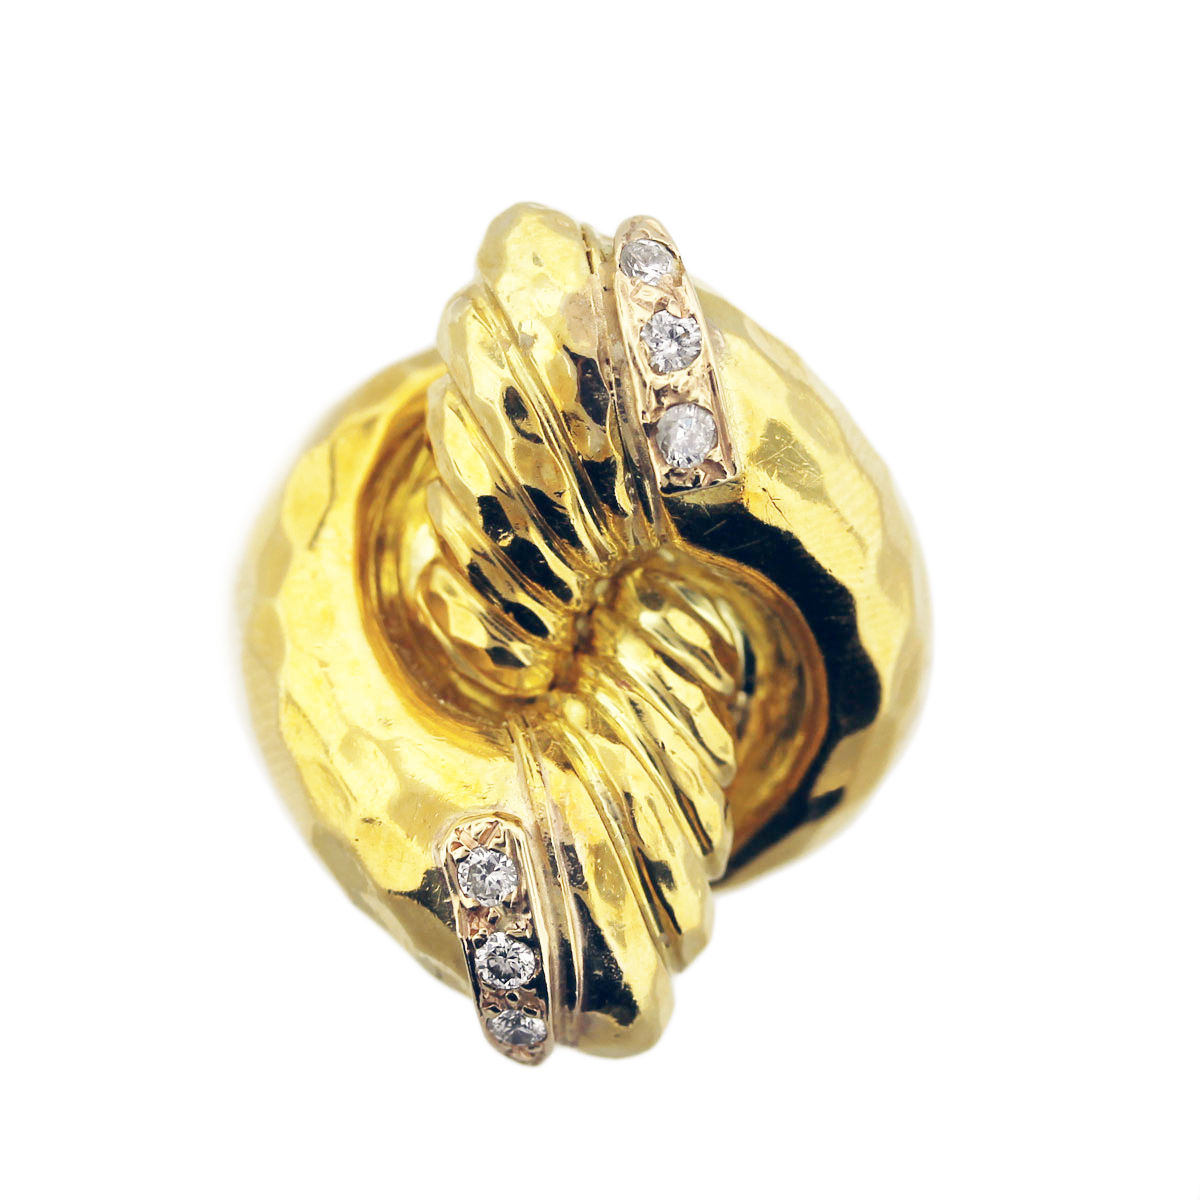 You are viewing this Henry Dunay 18K Yellow Gold Geometric Ring with Diamonds!